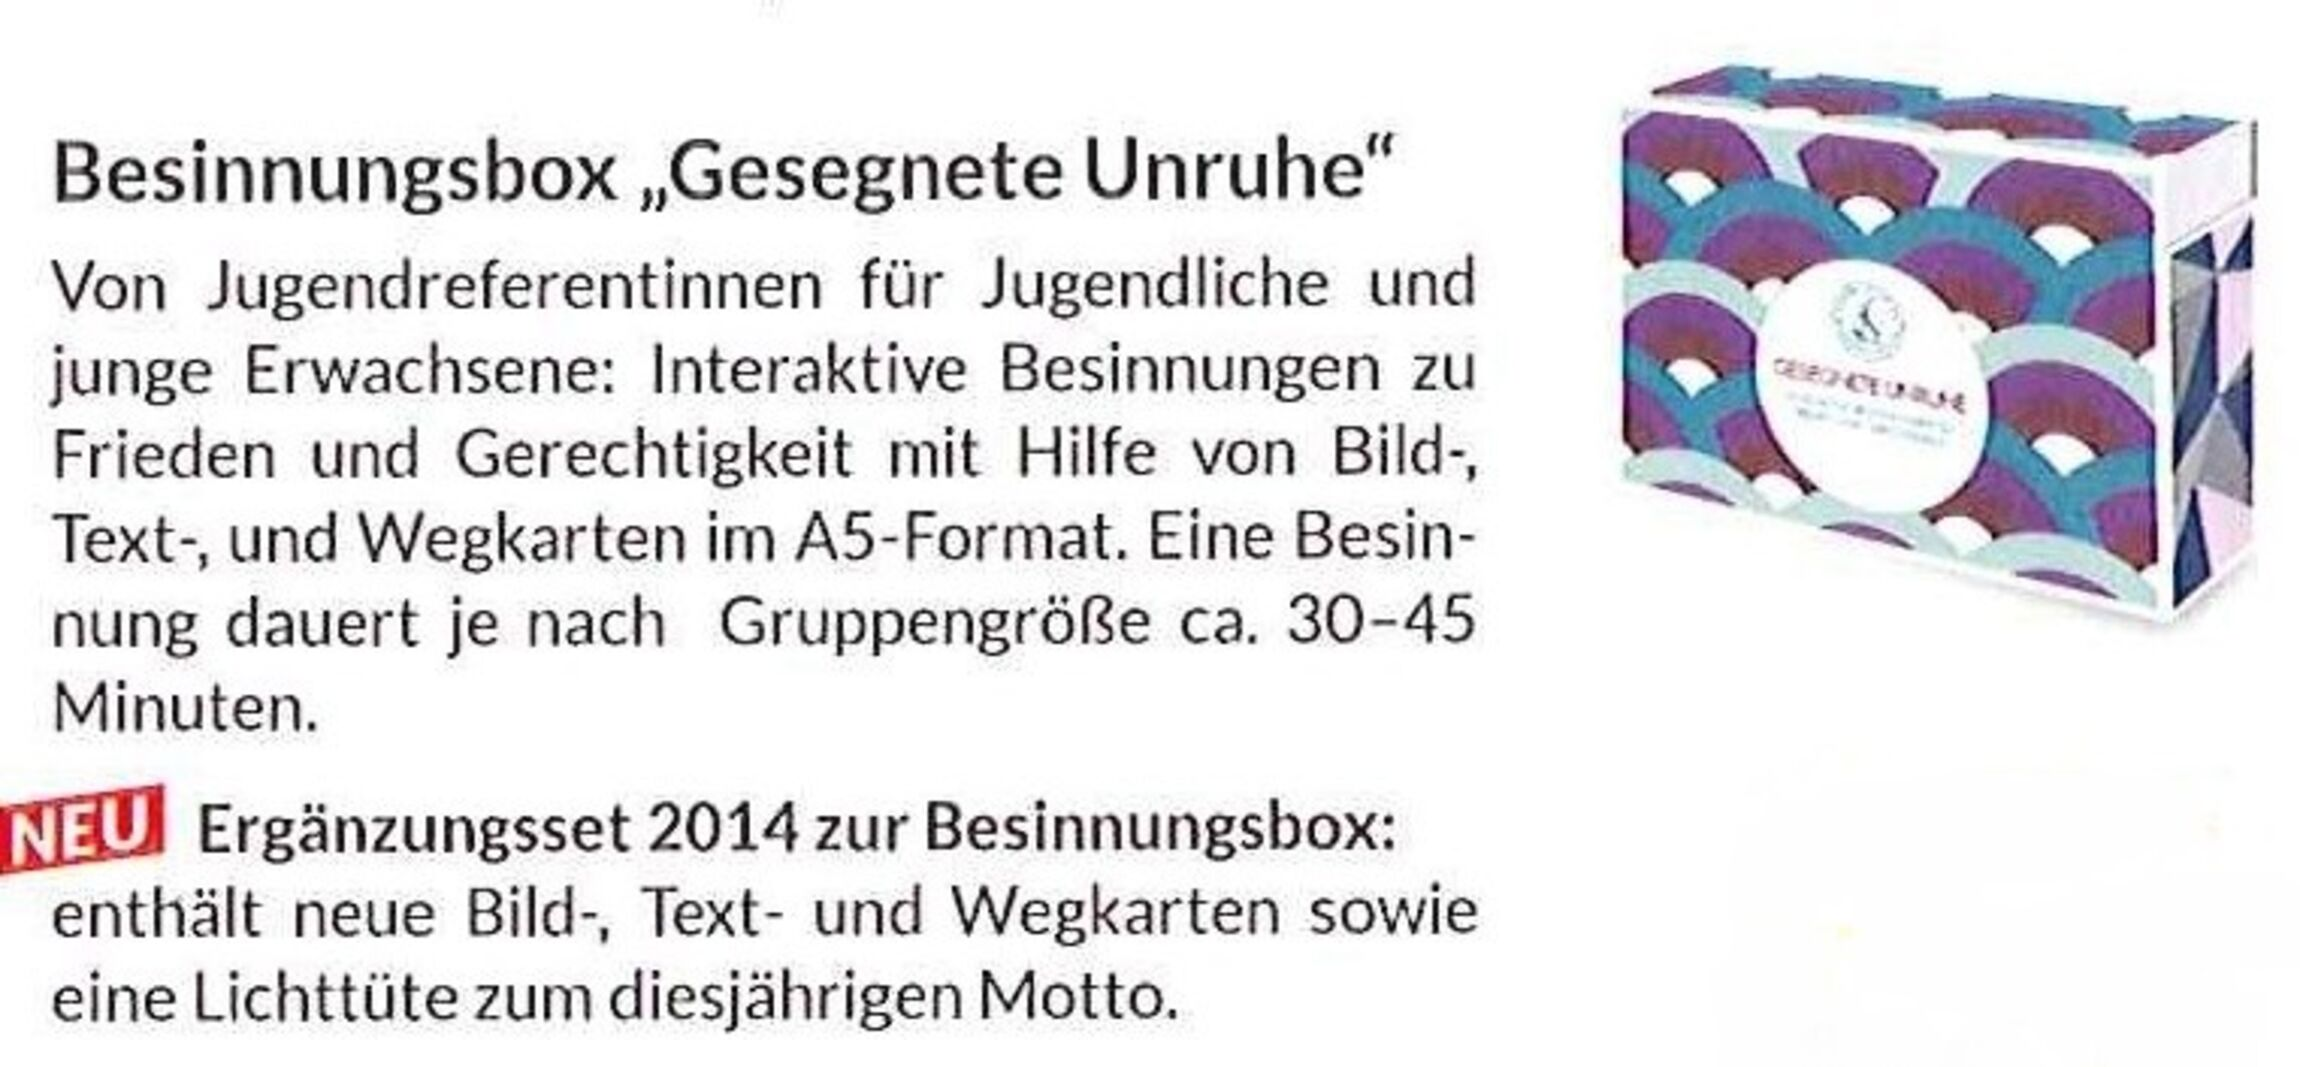 Besinnungsbox Flyer